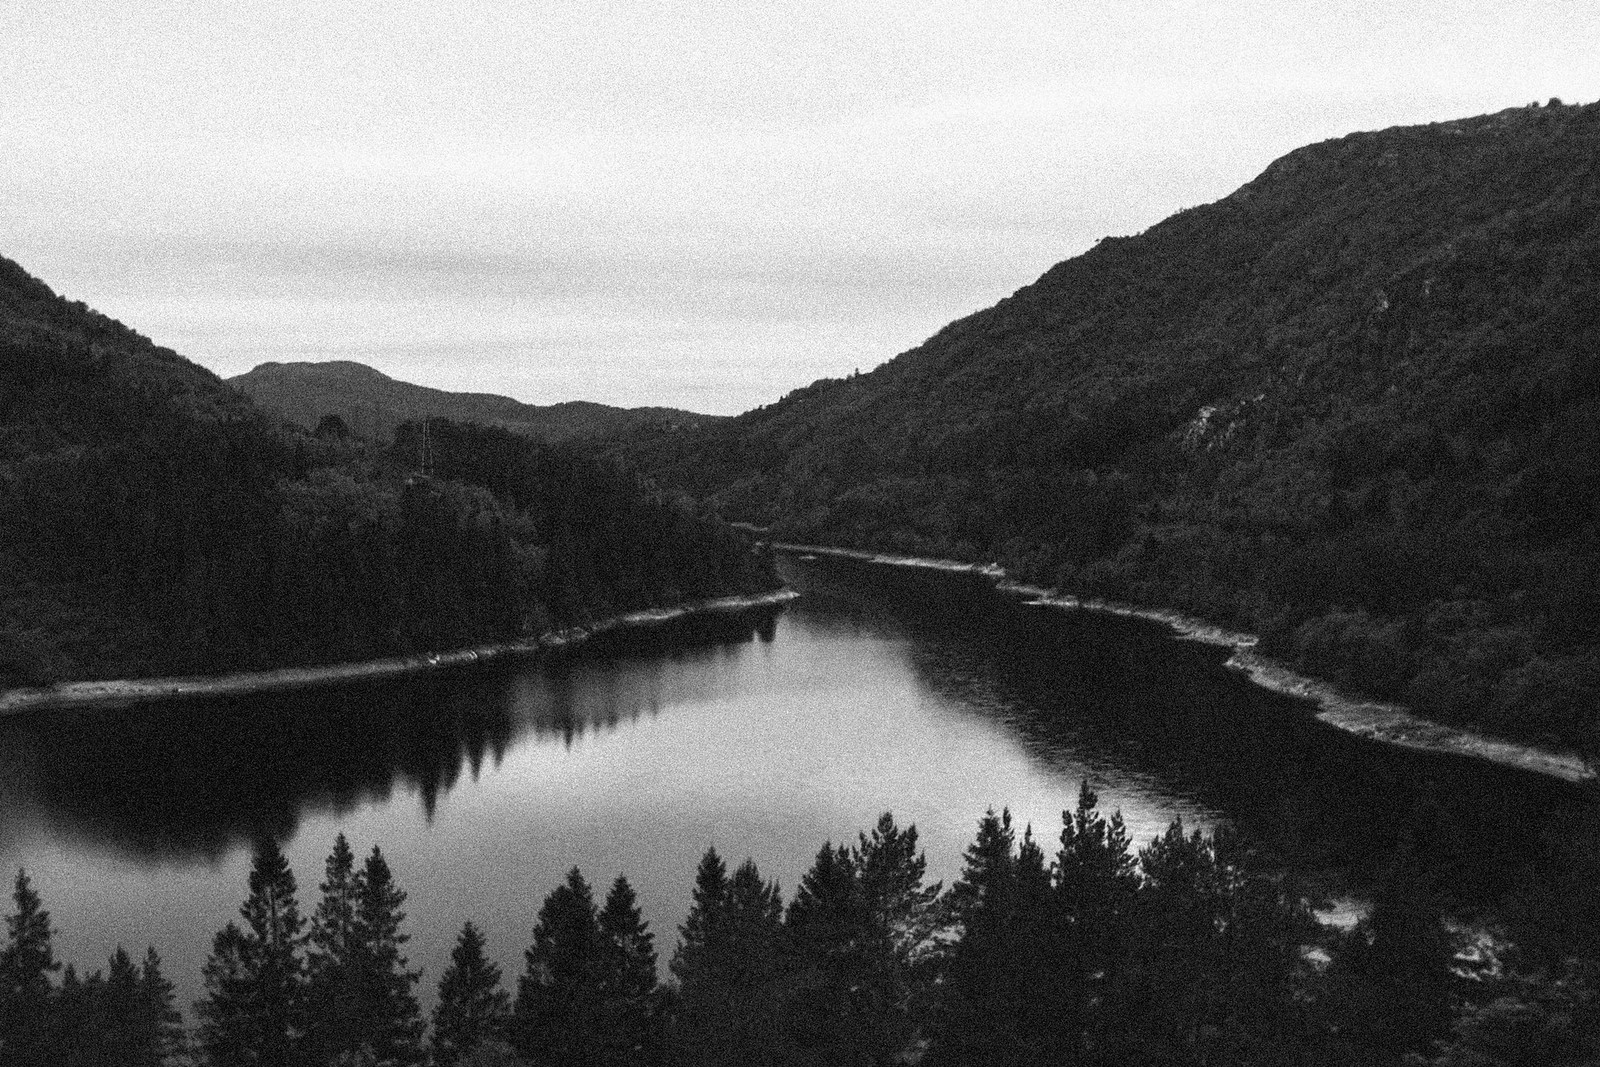 Valley in black and white with reservoir, trees and hills.